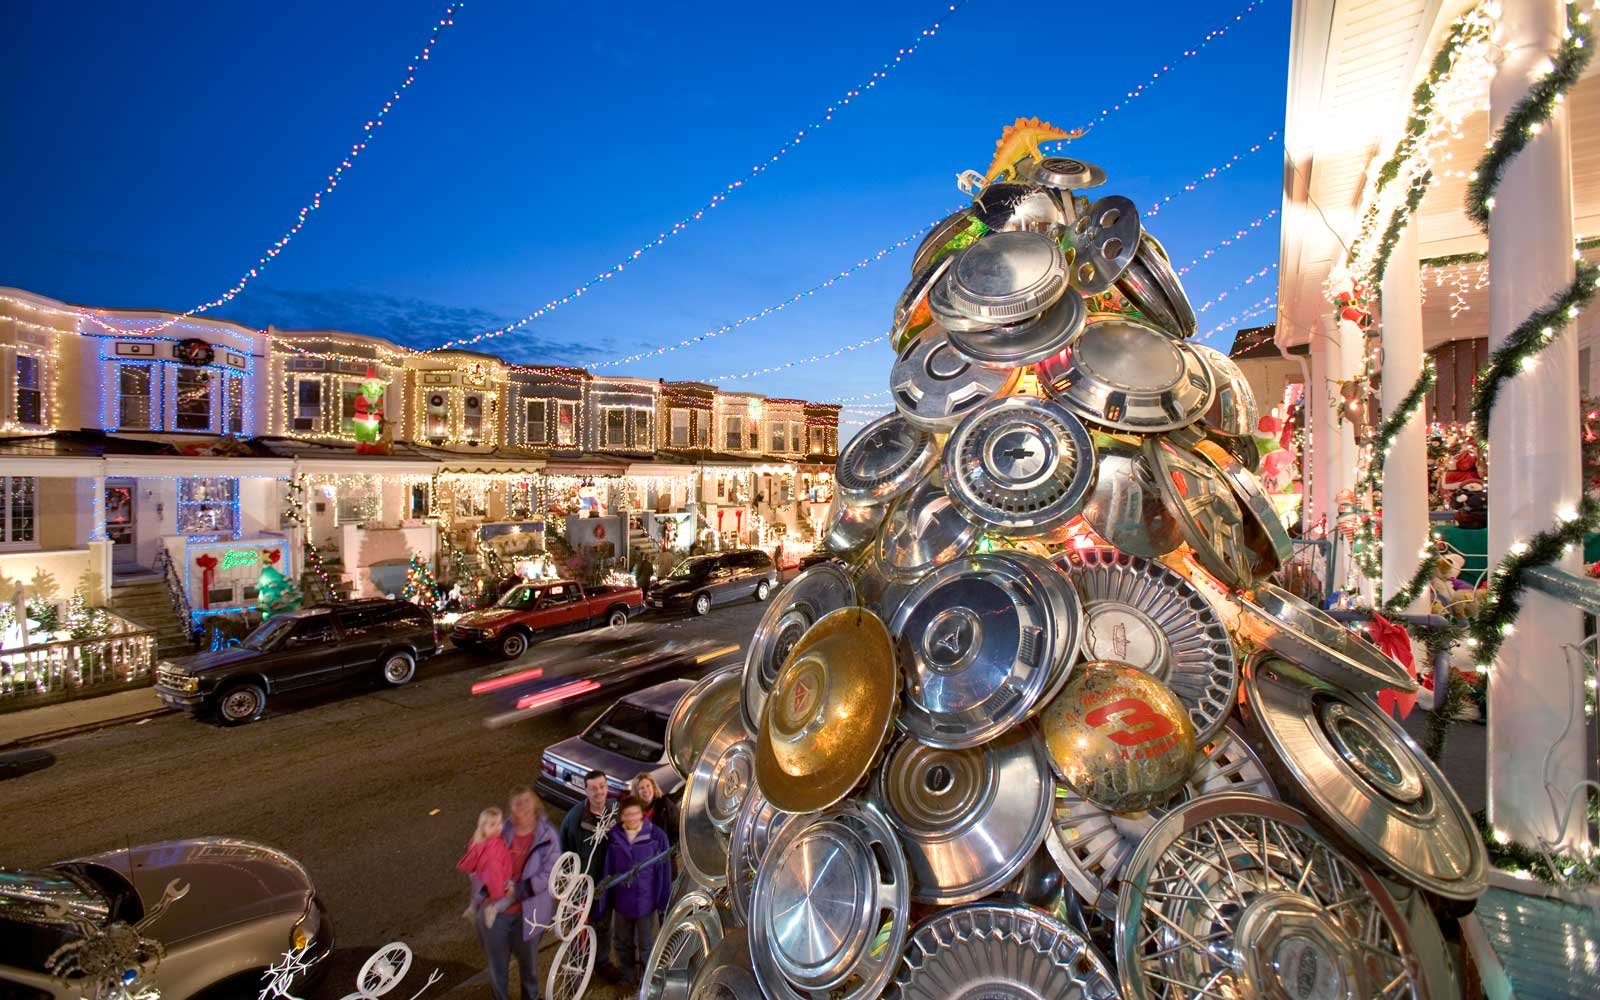 A tree constructed of hubcaps in Baltimore, Maryland